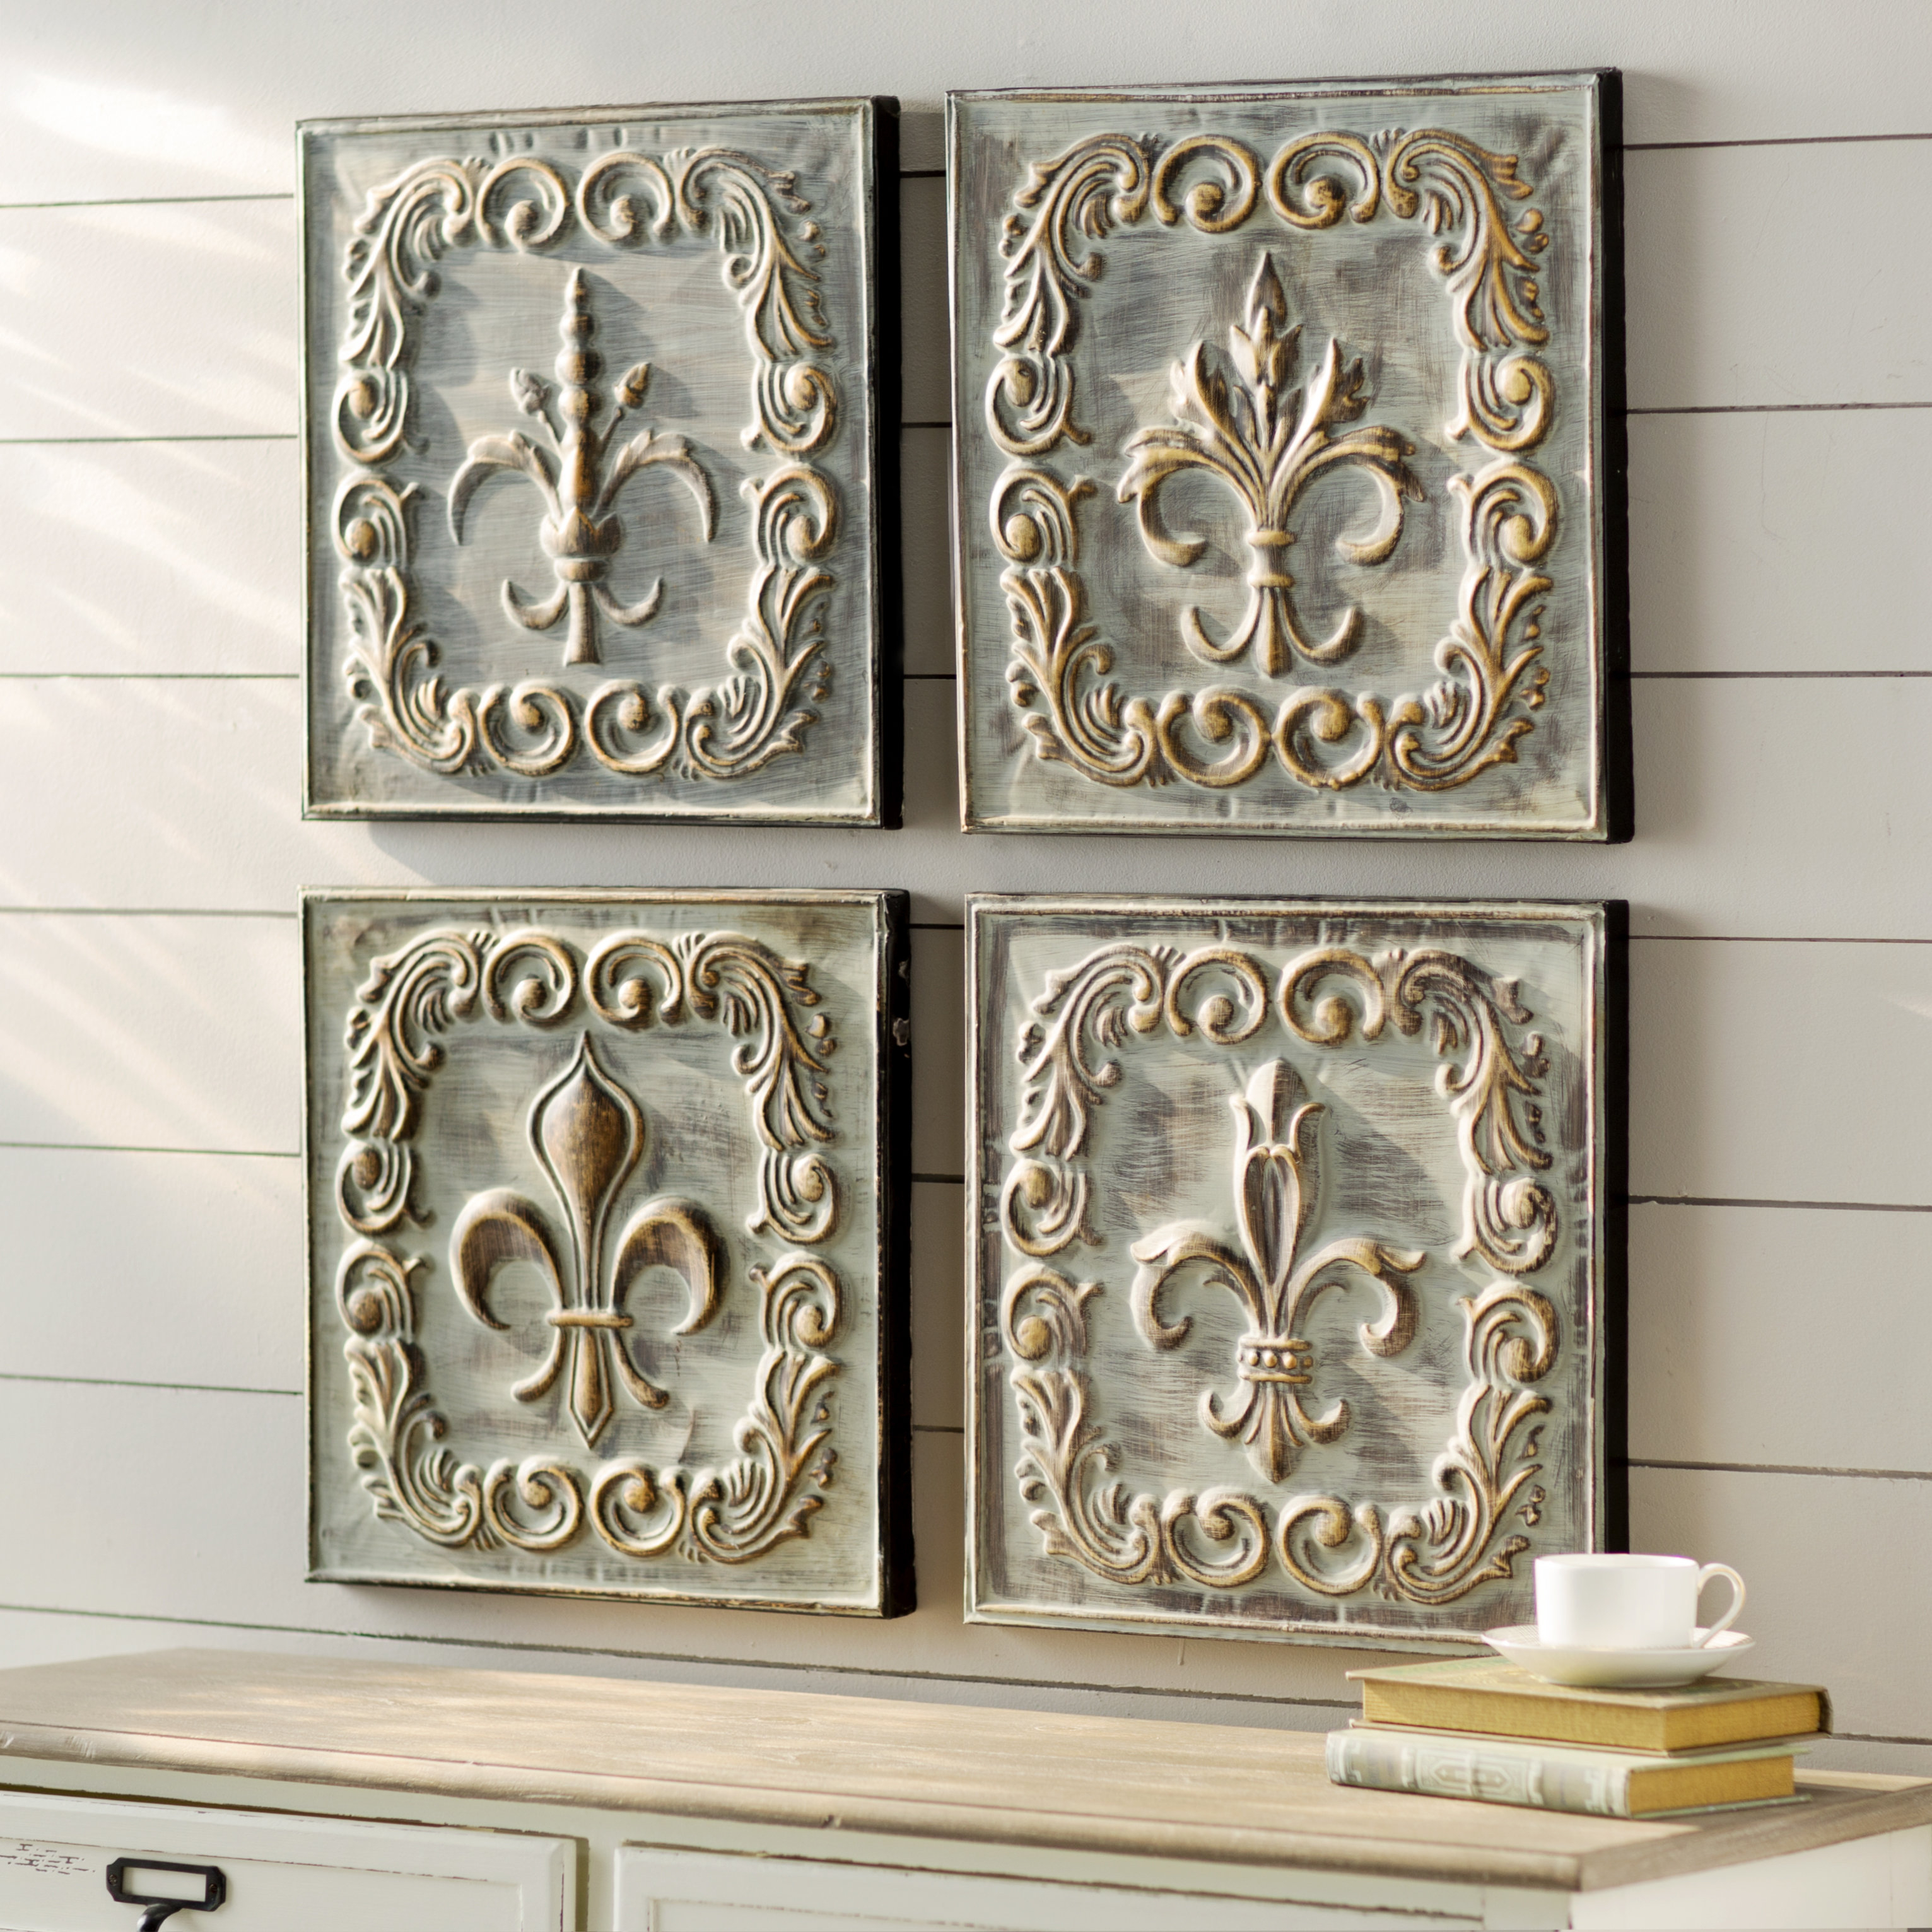 Fleur De Lis Metal Wall Art | Wayfair In 2 Piece Metal Wall Decor Sets By Fleur De Lis Living (View 11 of 30)